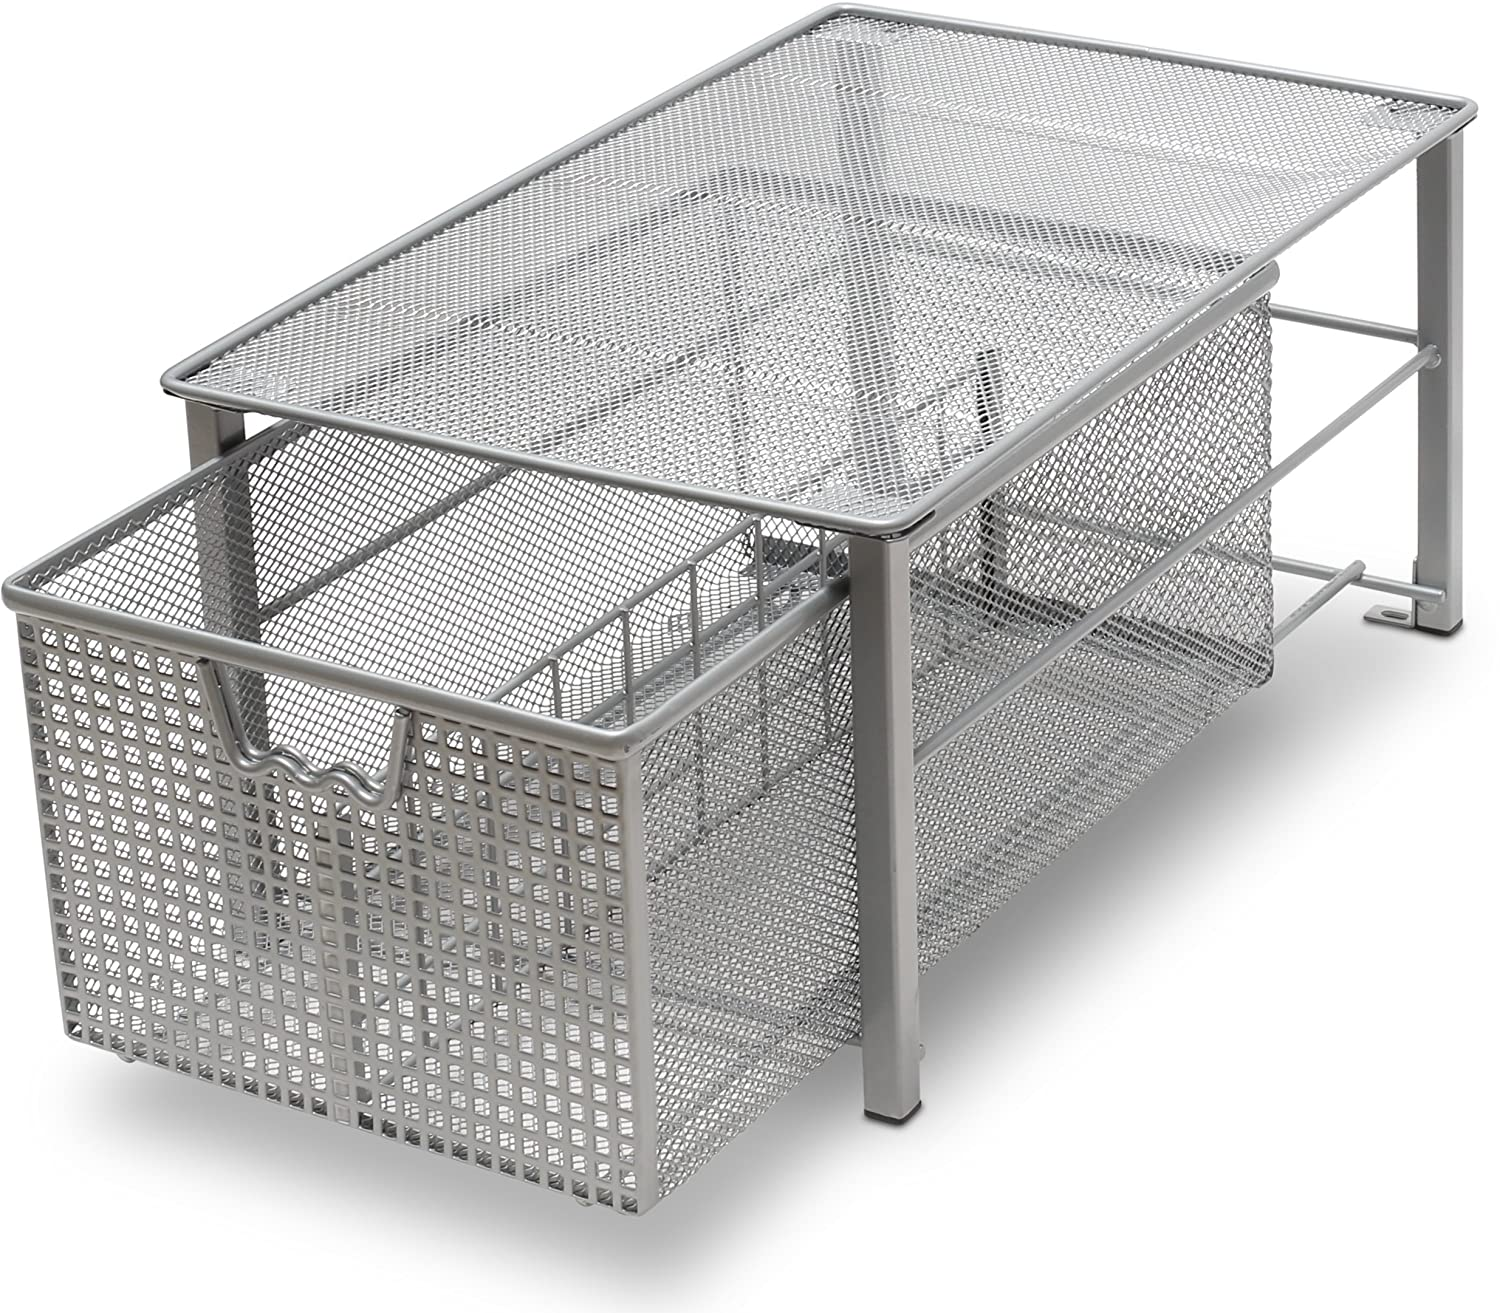 DecoBros Mesh Cabinet Basket Organizer, Silver (Large - 10.6 X 16 X 7.8) Deco Brothers BK-014-1